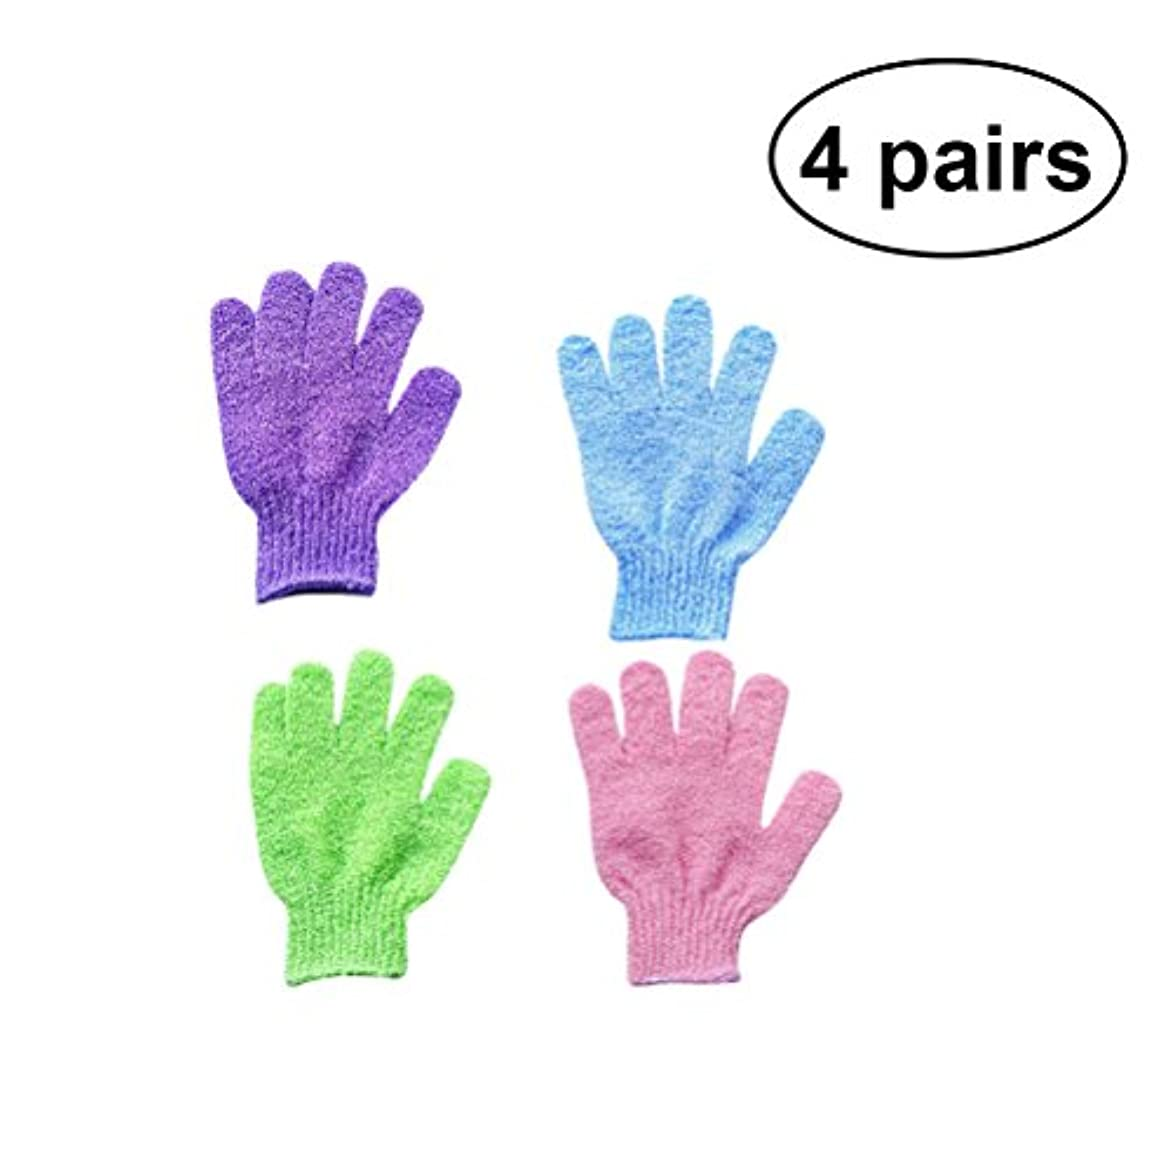 行商人変化する日帰り旅行にHealifty 4 Pairs Exfoliating Bath Gloves Shower Mitts Exfoliating Body Spa Massage Dead Skin Cell Remover